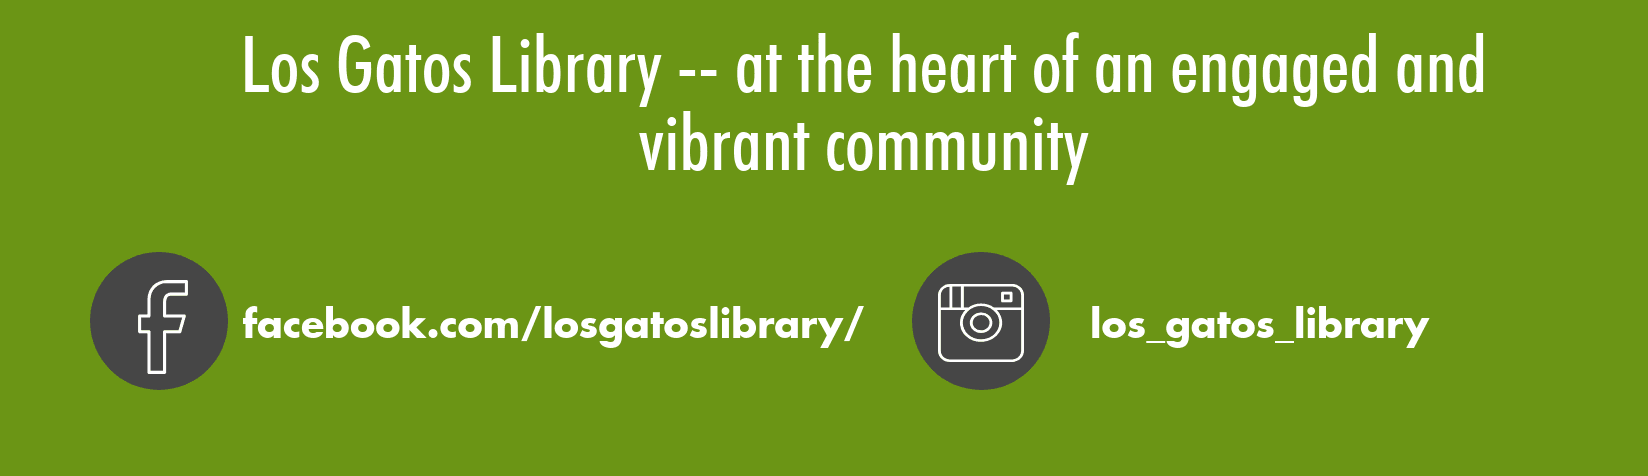 Los Gatos Library -- at the heart of an engaged and vibrant community, facebook.com/losgatoslibrary/